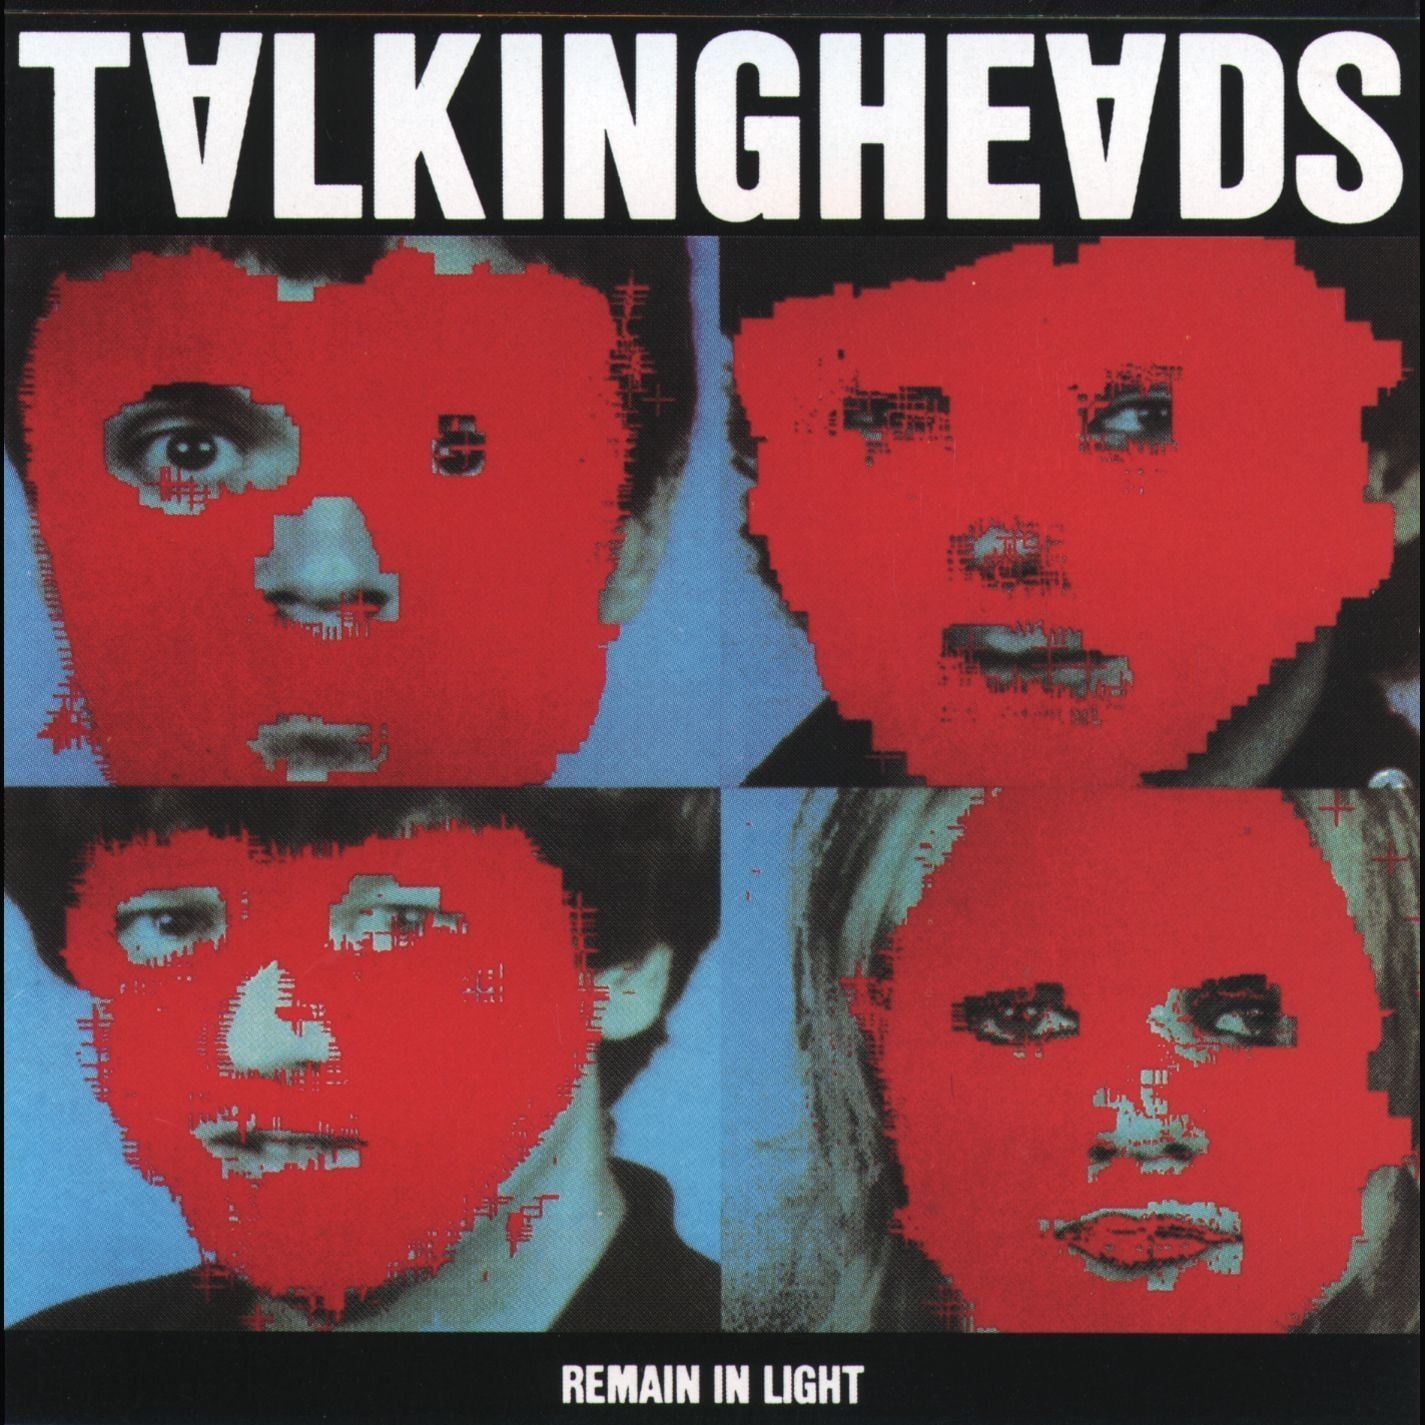 Talking Heads, Remain In Light